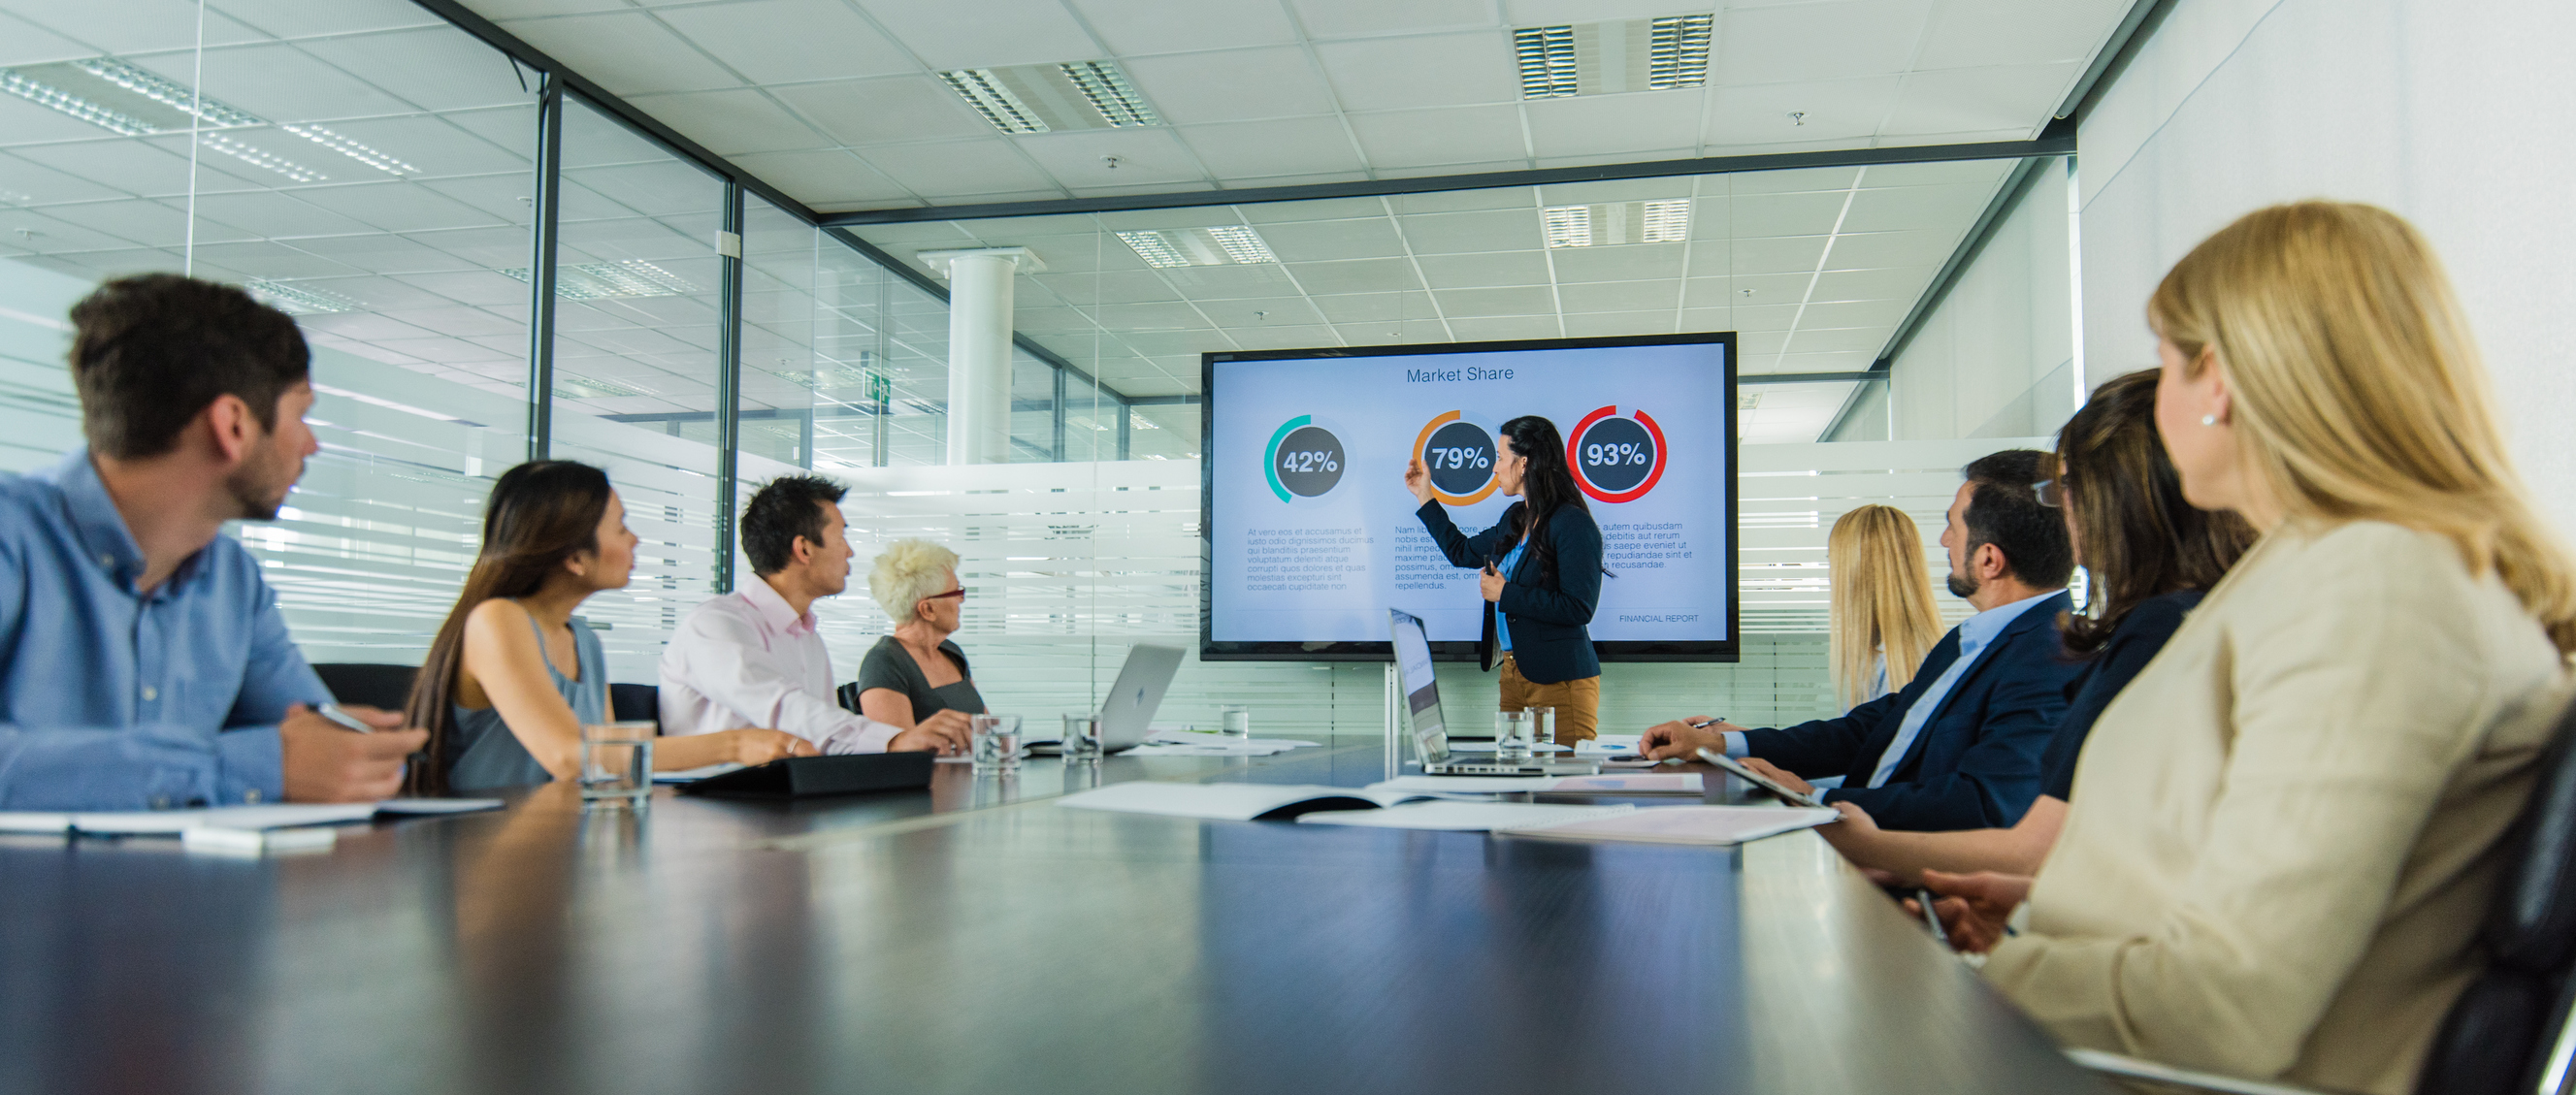 Businesswoman giving presentation in conference room.